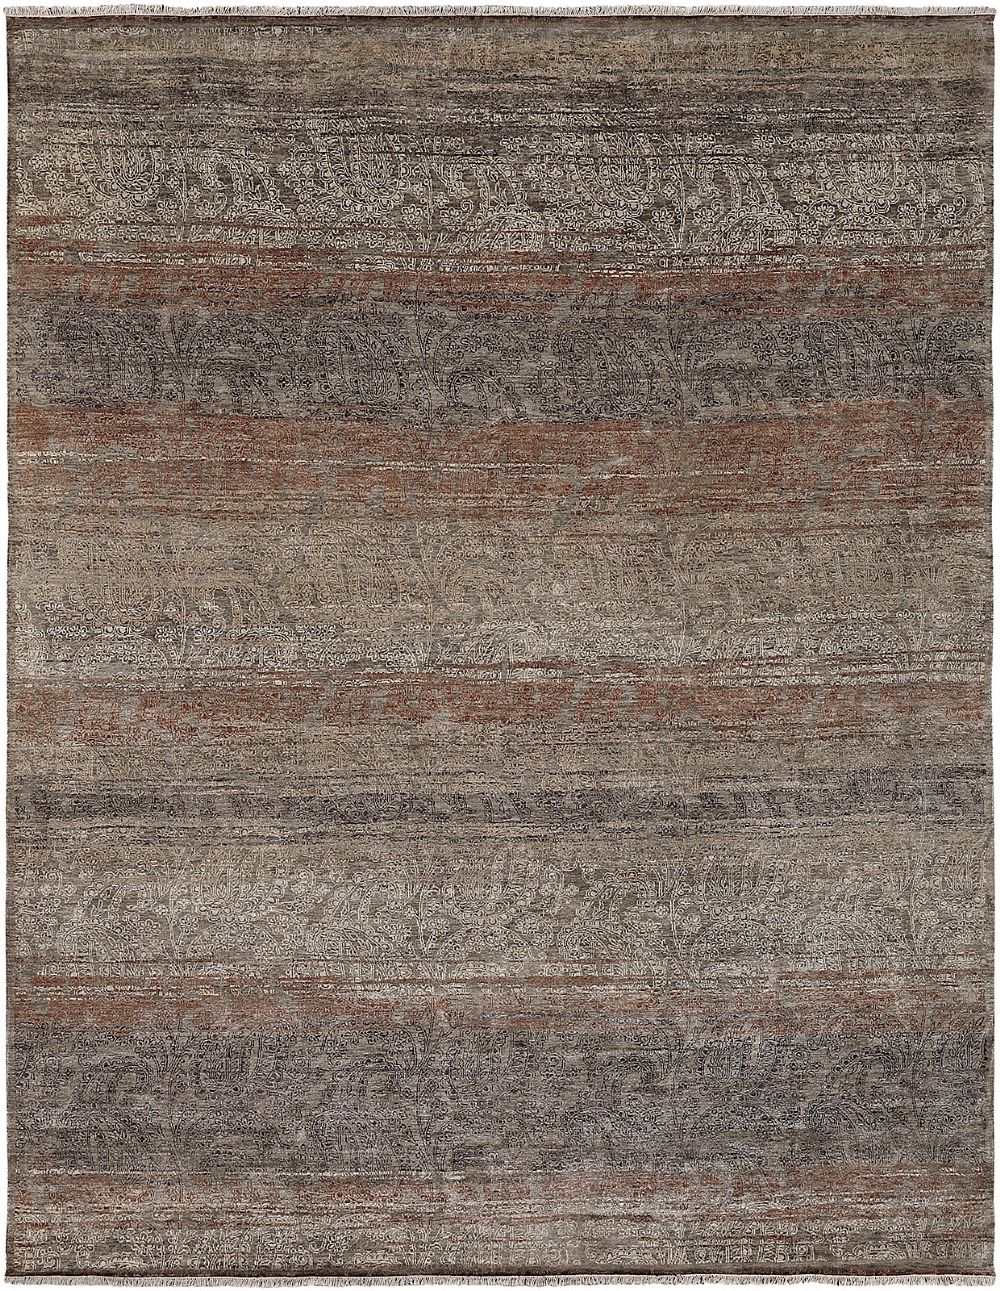 surya bayburt country & floral area rug collection